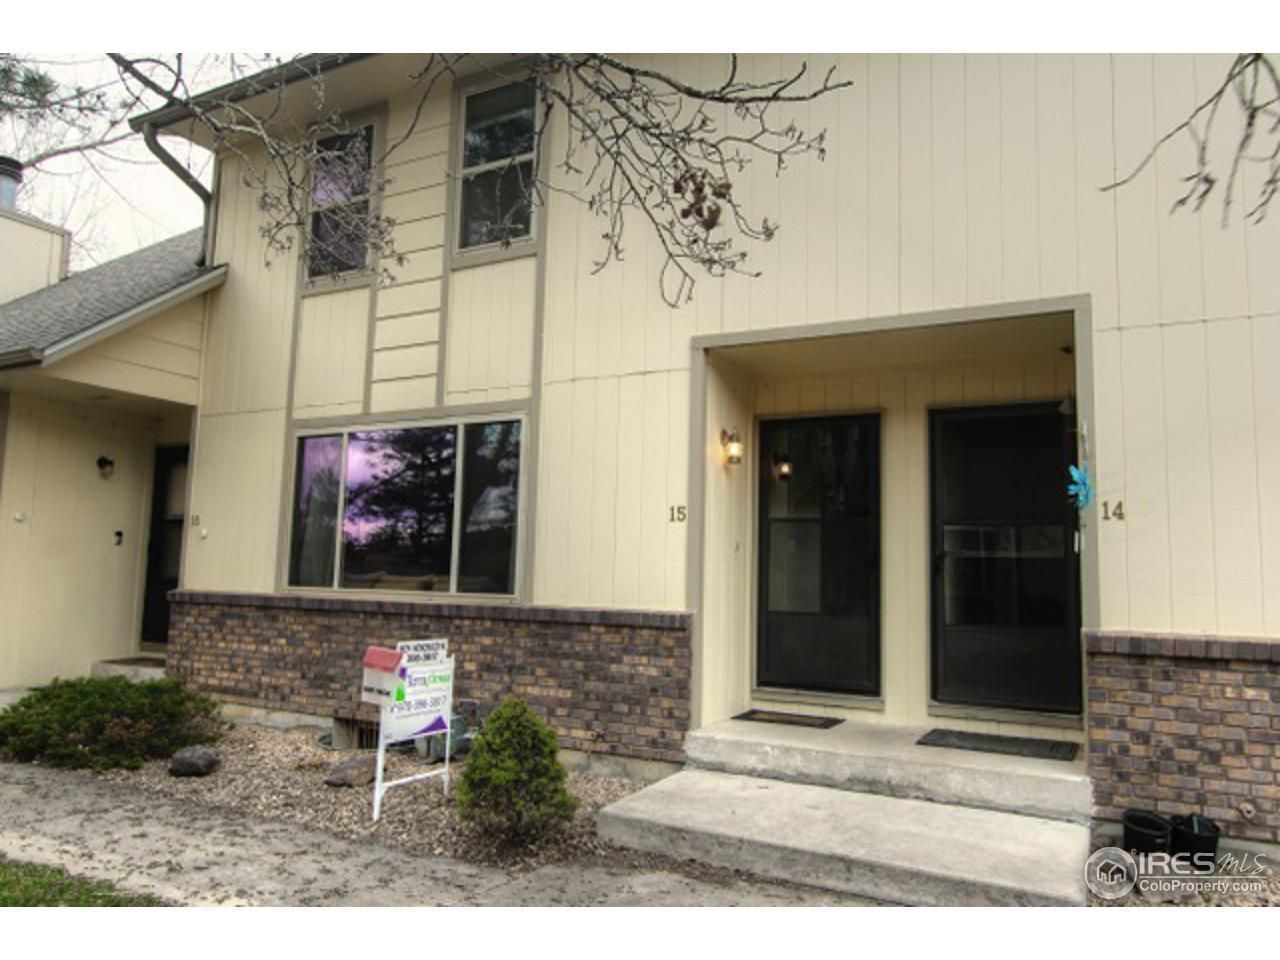 907 44th ave ct #15, greeley, co 80634   mls# 817923   redfin